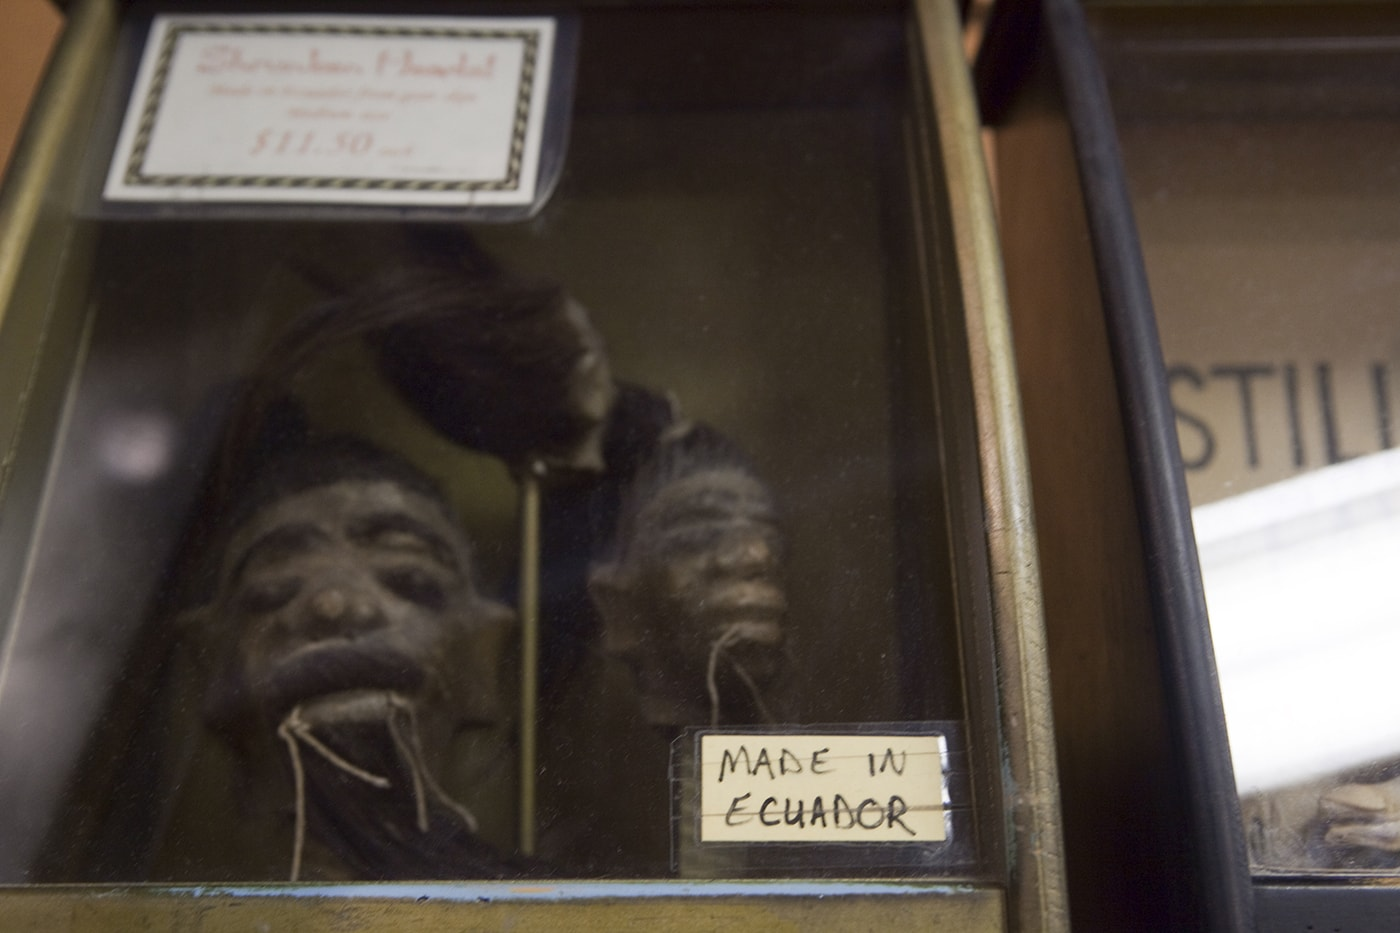 Shrunken heads at Ye Olde Curiosity Shoppe in Seattle, Washington